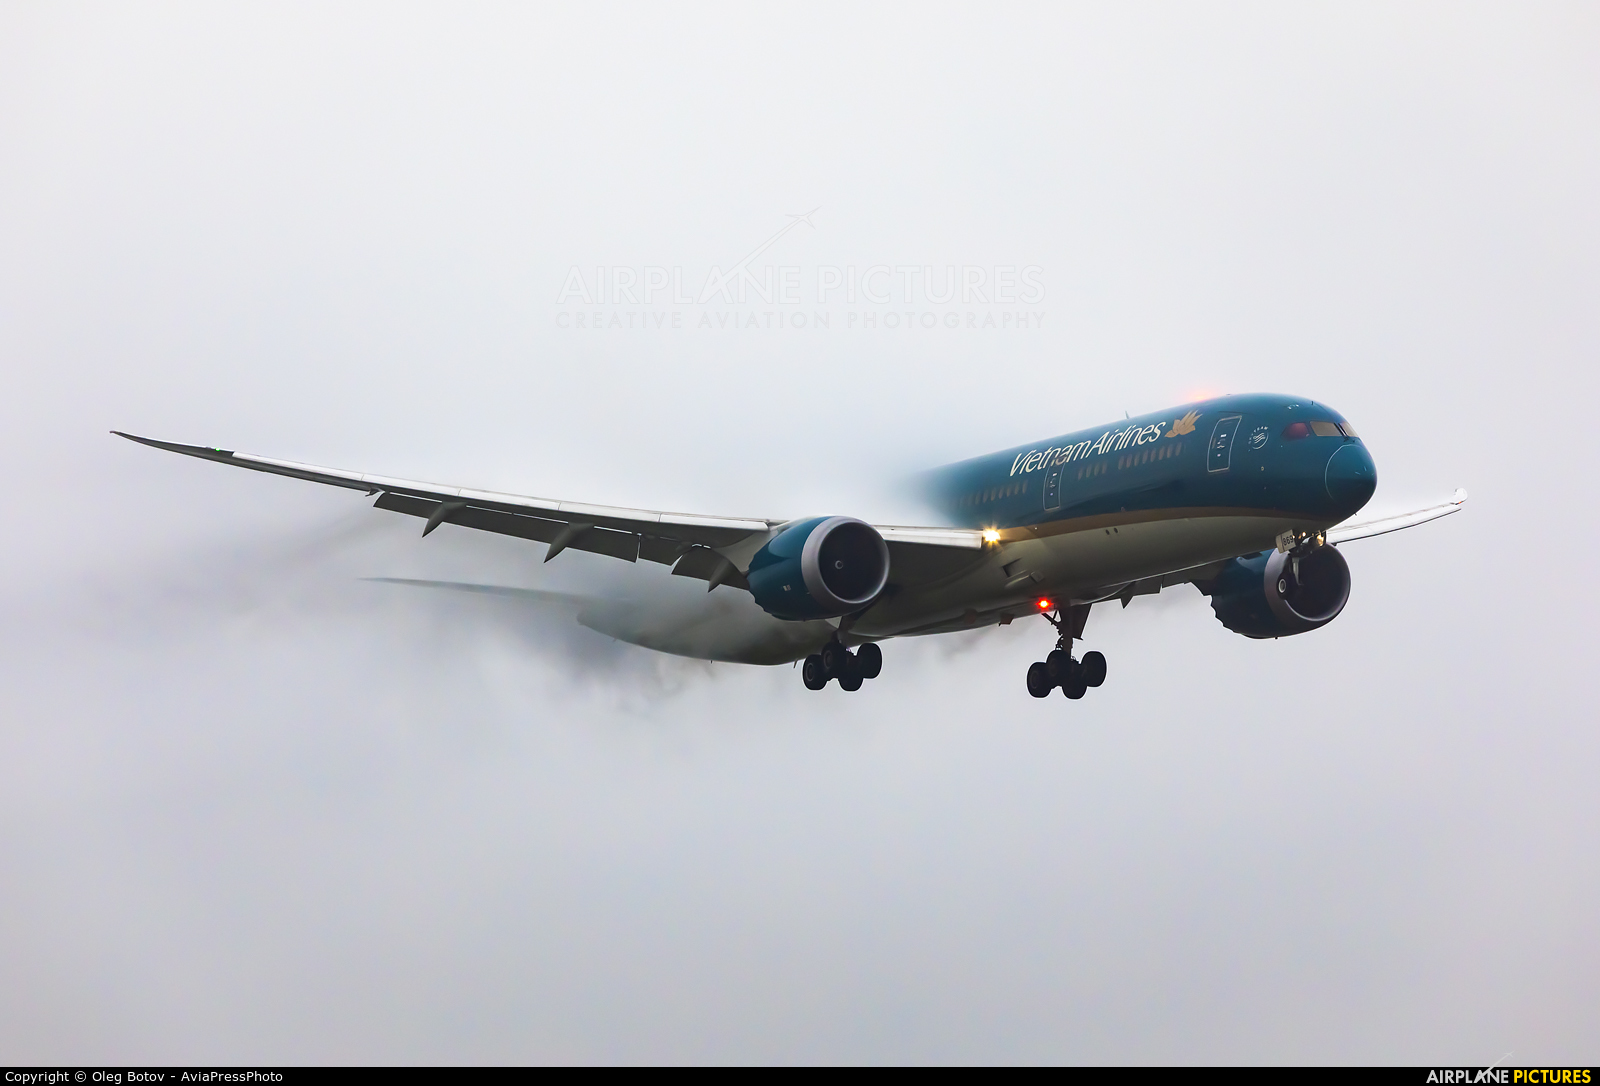 Vietnam Airlines VN-A869 aircraft at Moscow - Sheremetyevo